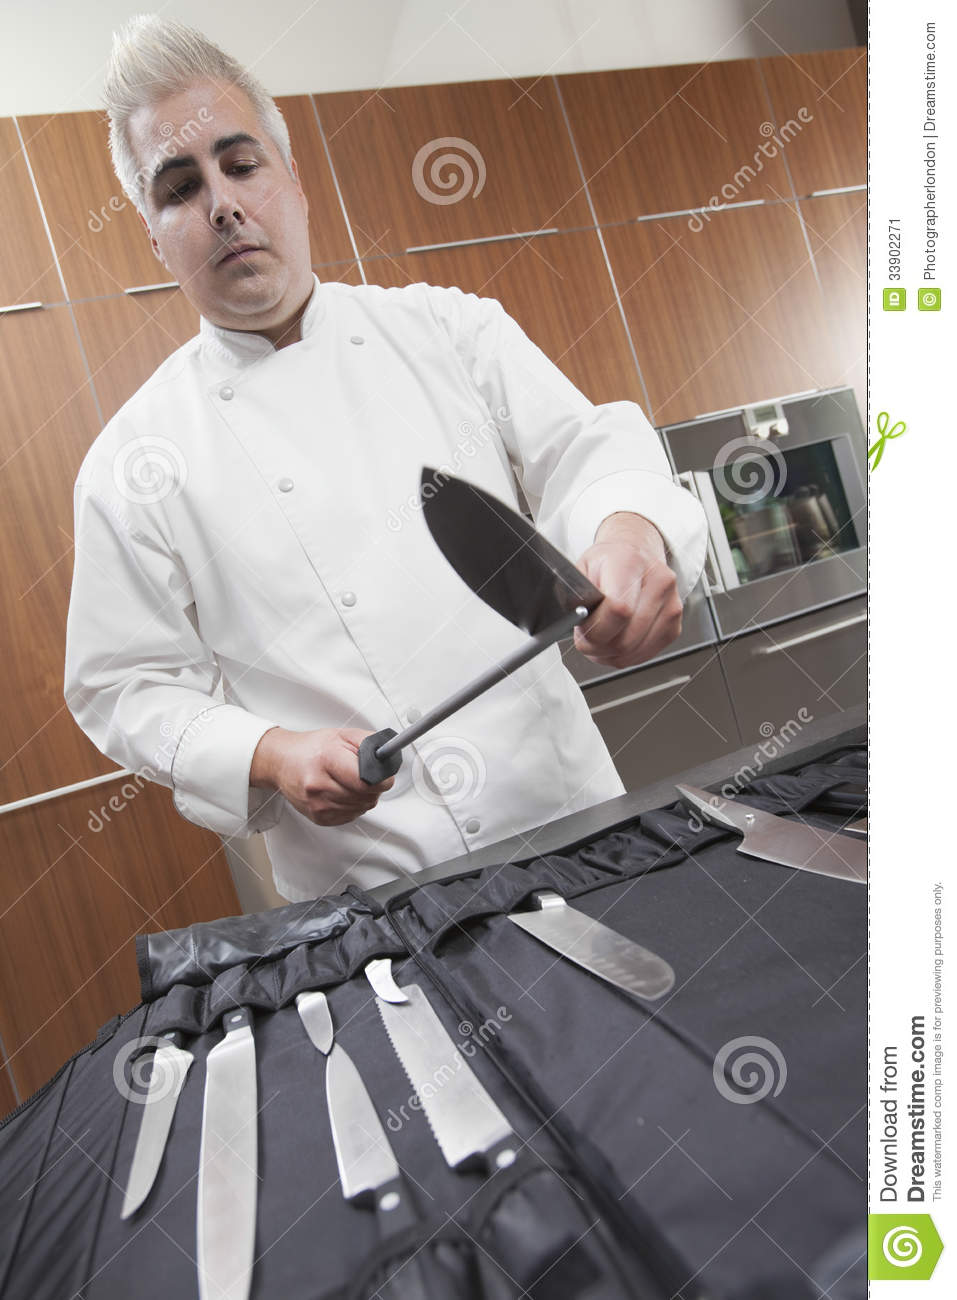 chef sharpening knives in commercial kitchen stock image image 33902271. Black Bedroom Furniture Sets. Home Design Ideas